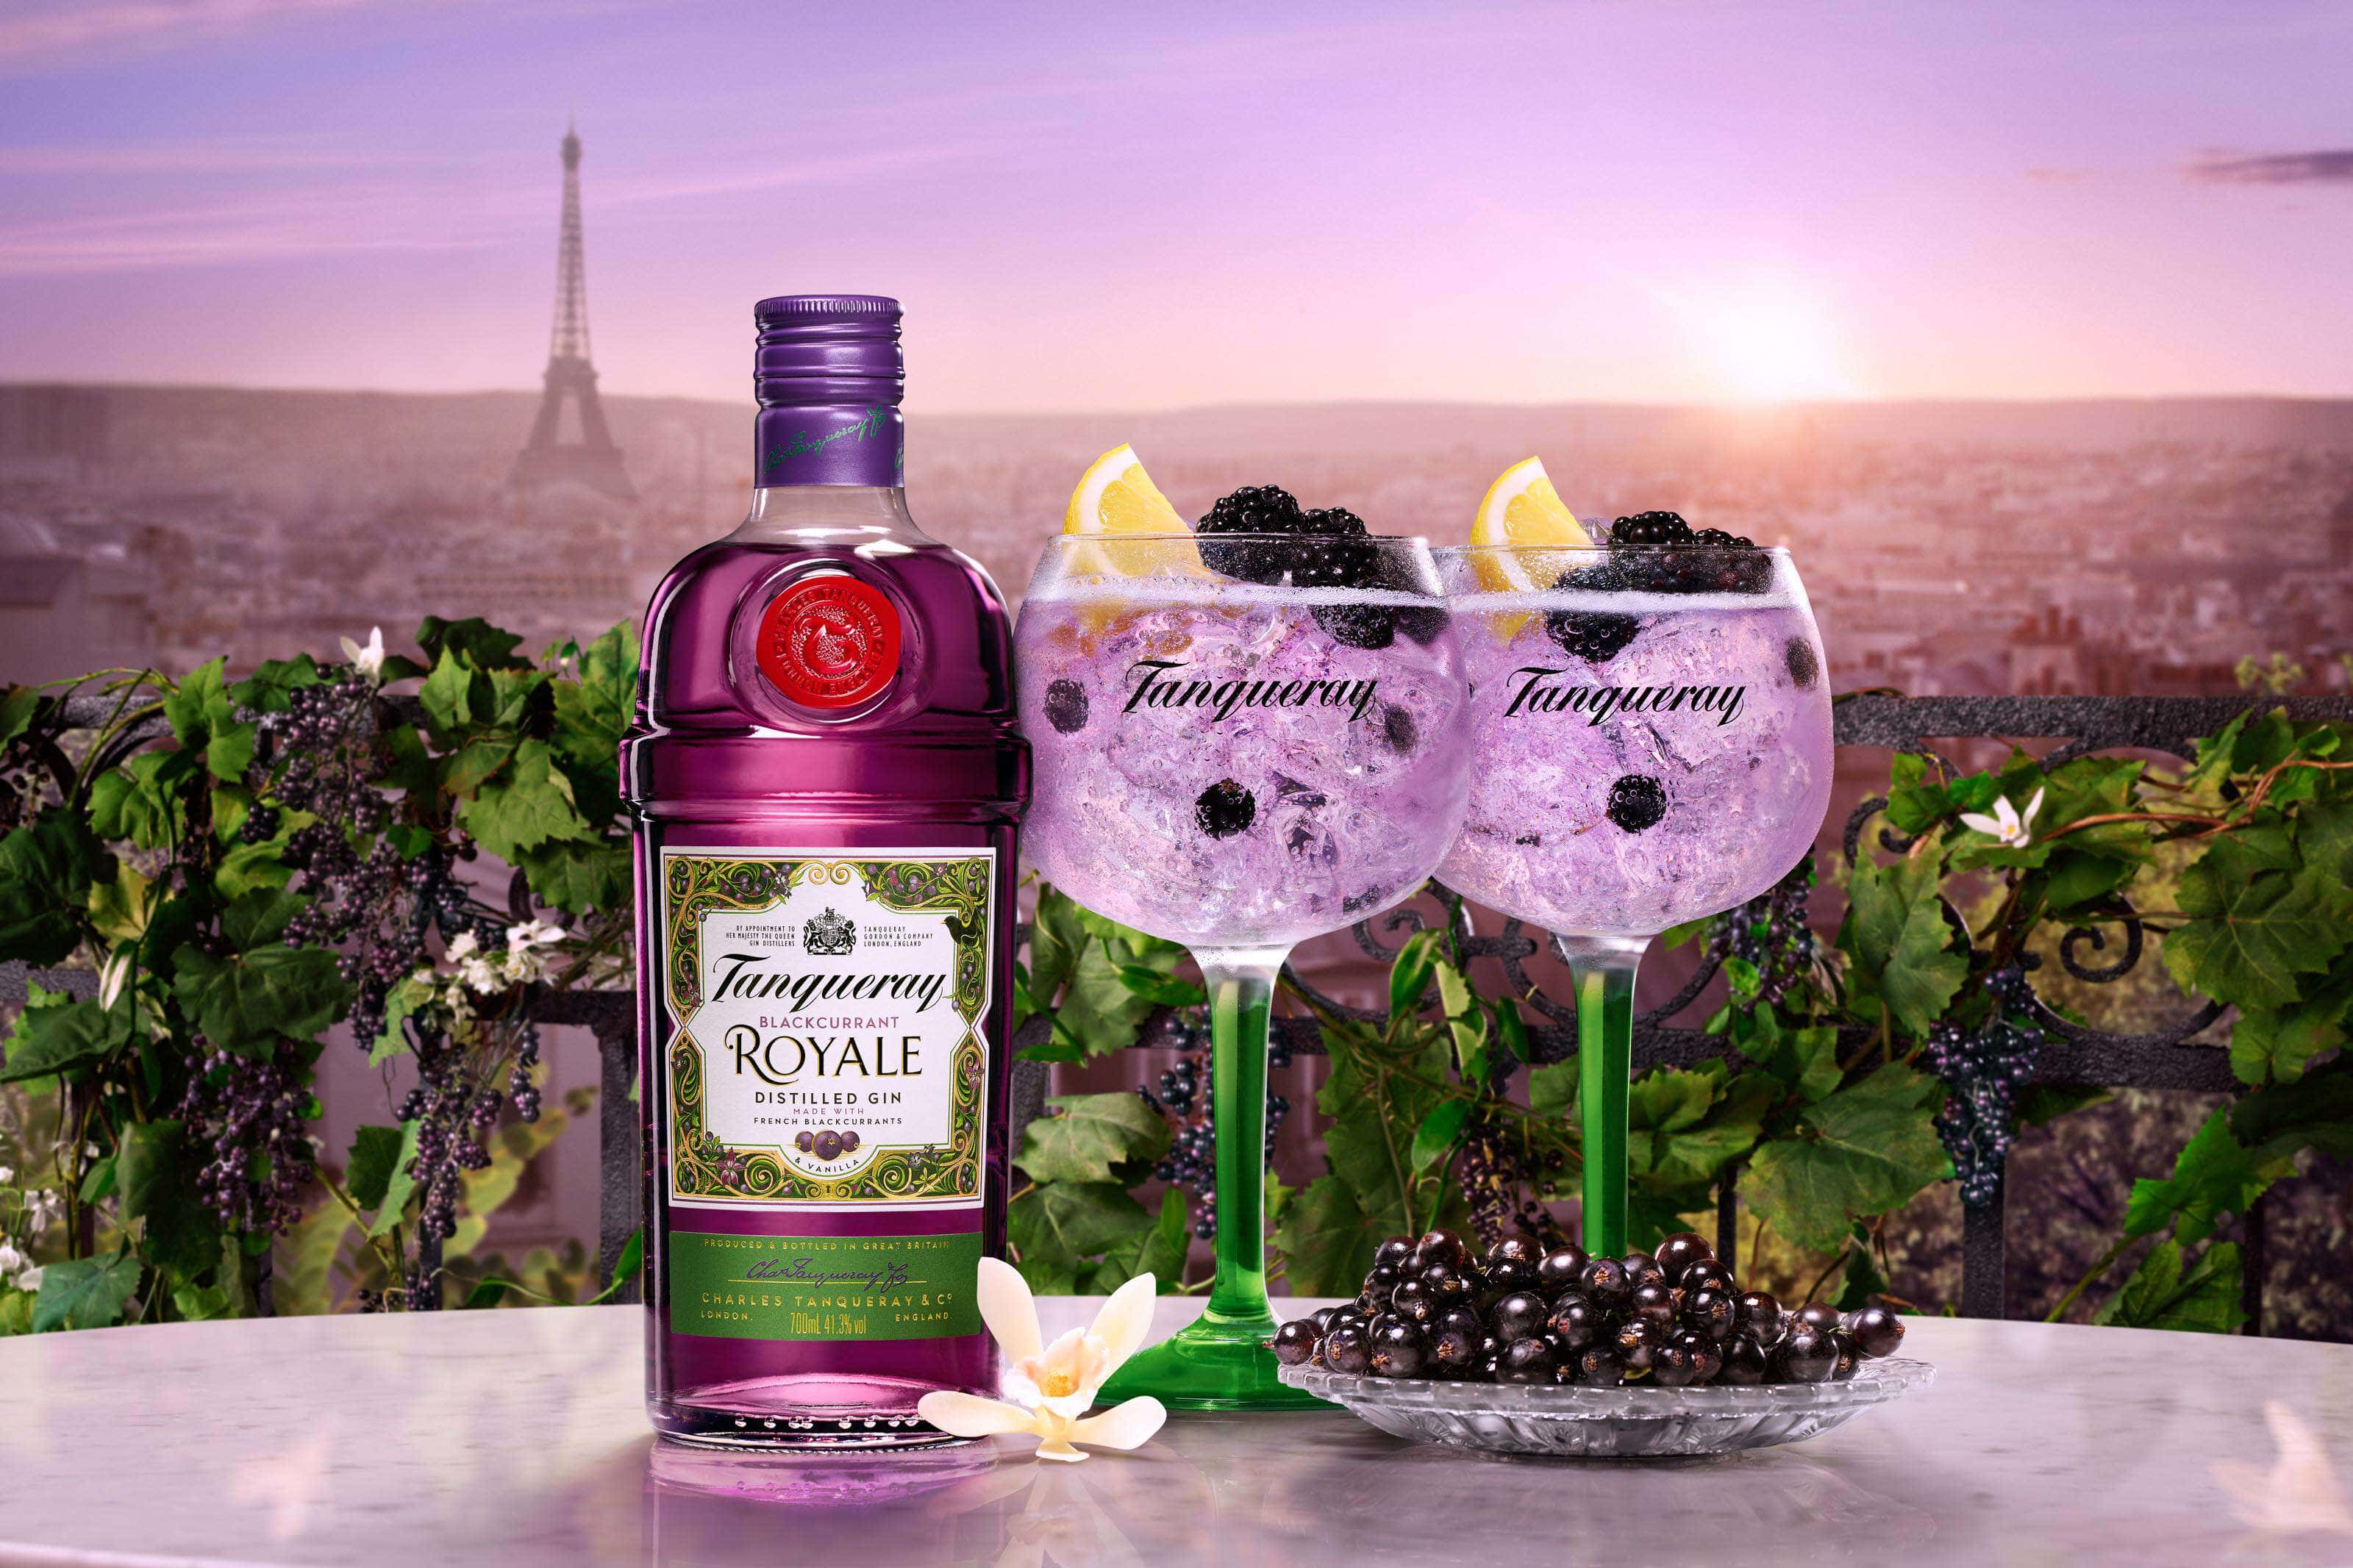 Tanqueray blackcurrant royale gin with two drinks